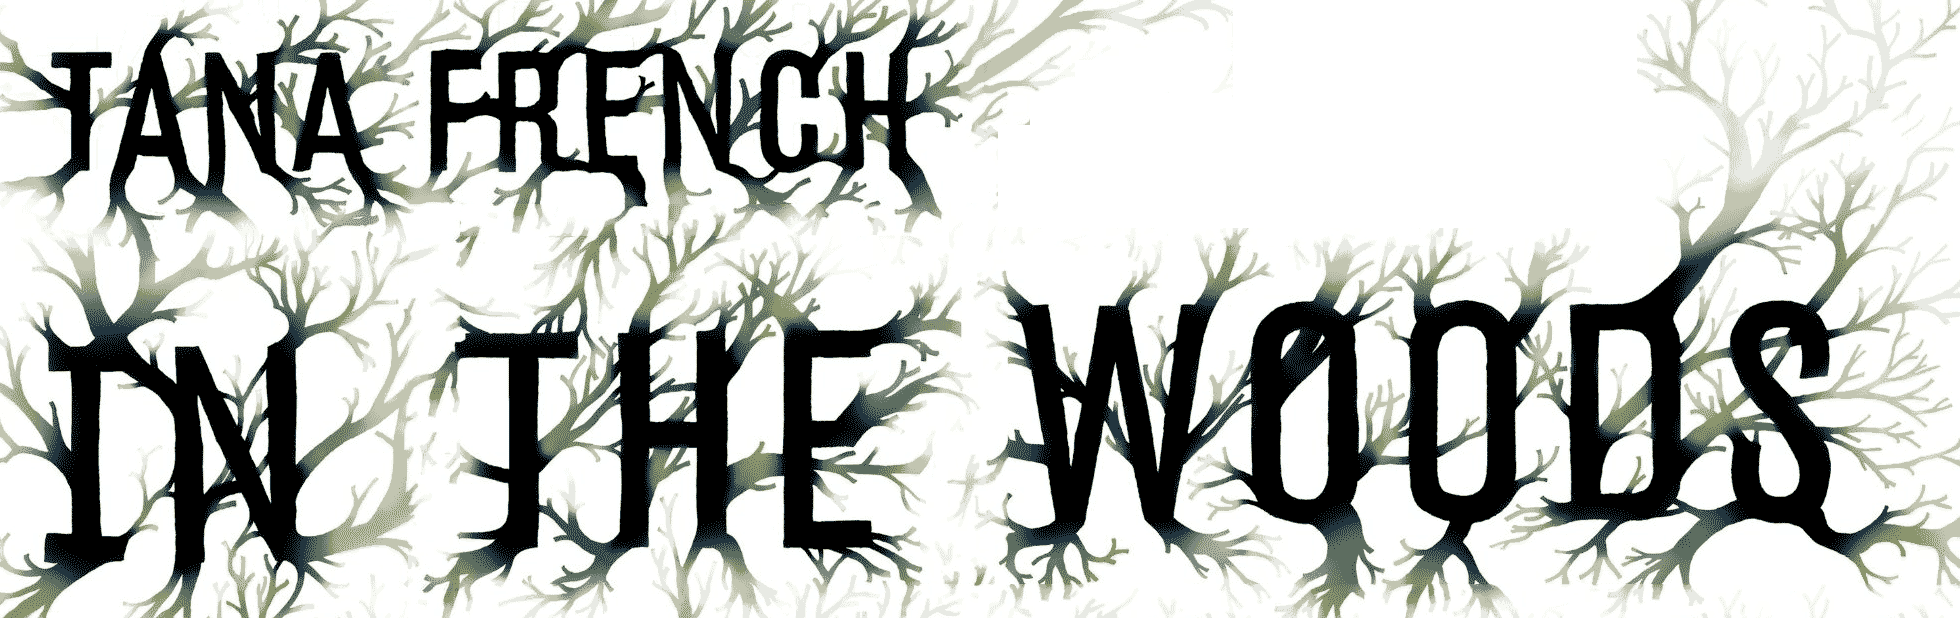 in the woods tana french